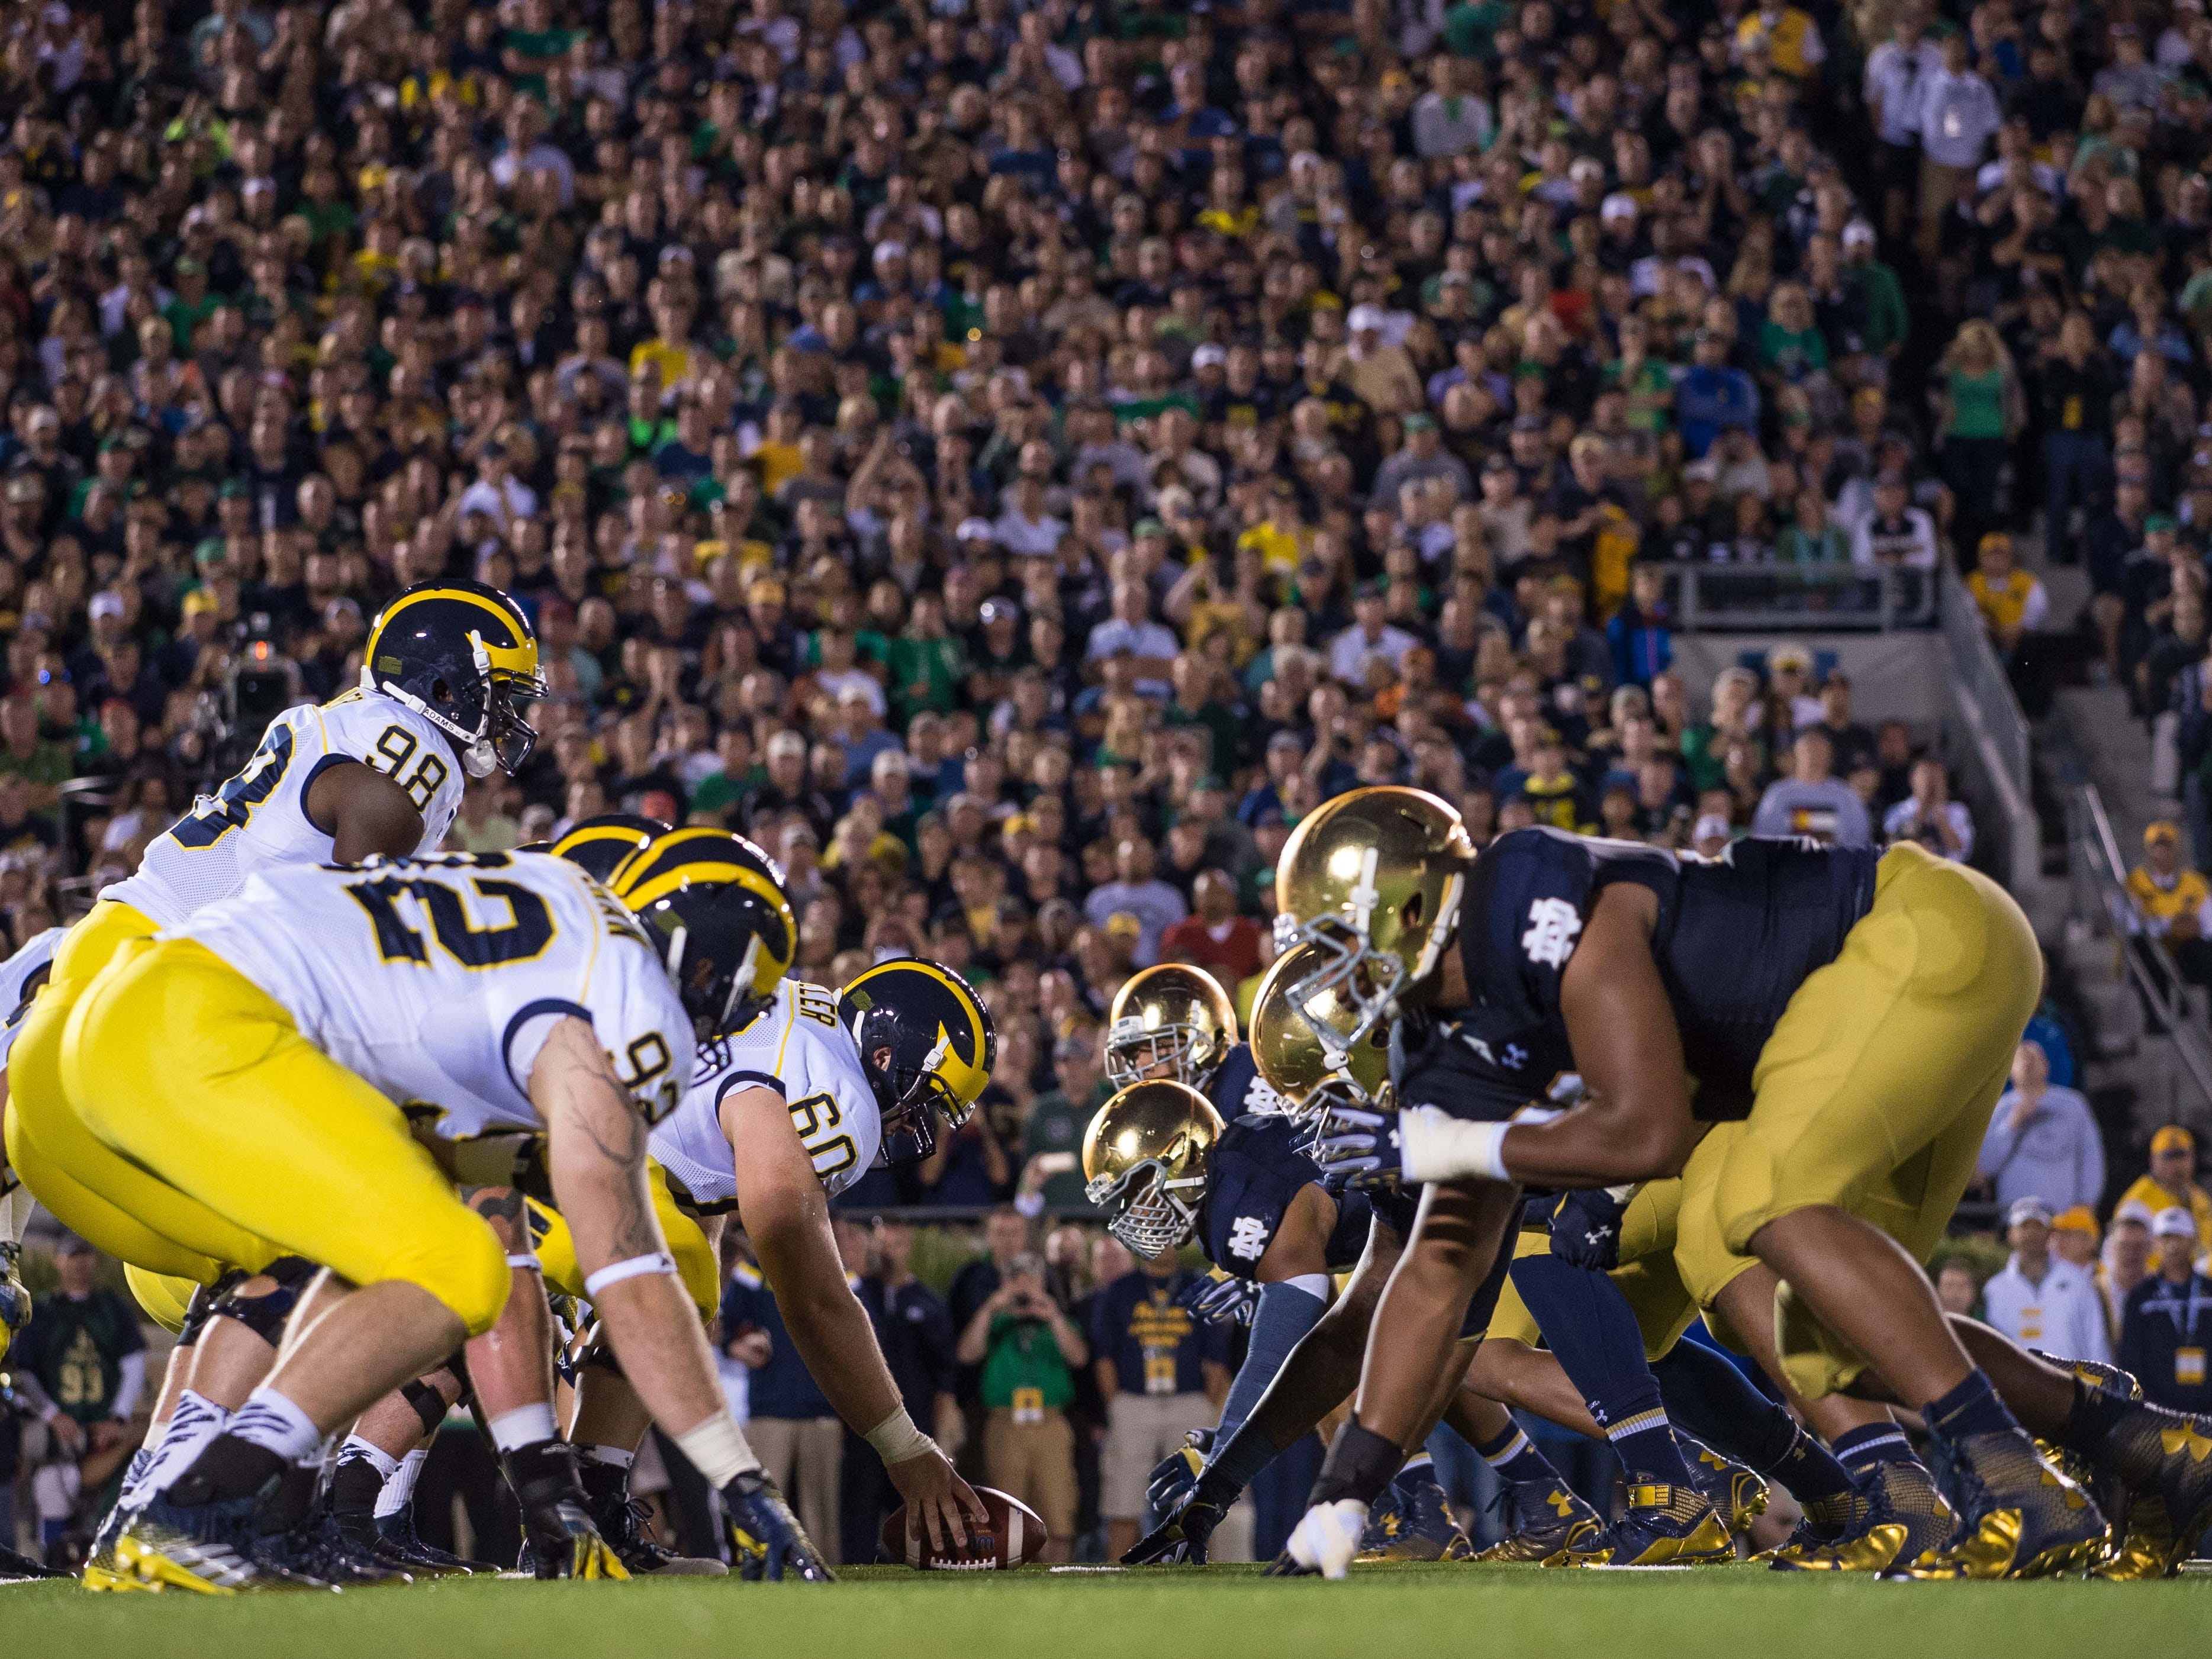 6. Michigan at Notre Dame. When: Sept. 1.  Where: South Bend, Ind.  The buzz: A classic rivalry renewed is one of the most anticipated games of the season and it comes Week 1. The last time the Wolverines faced the Fighting Irish ... it wasn't pretty (31-0 ND in 2014).